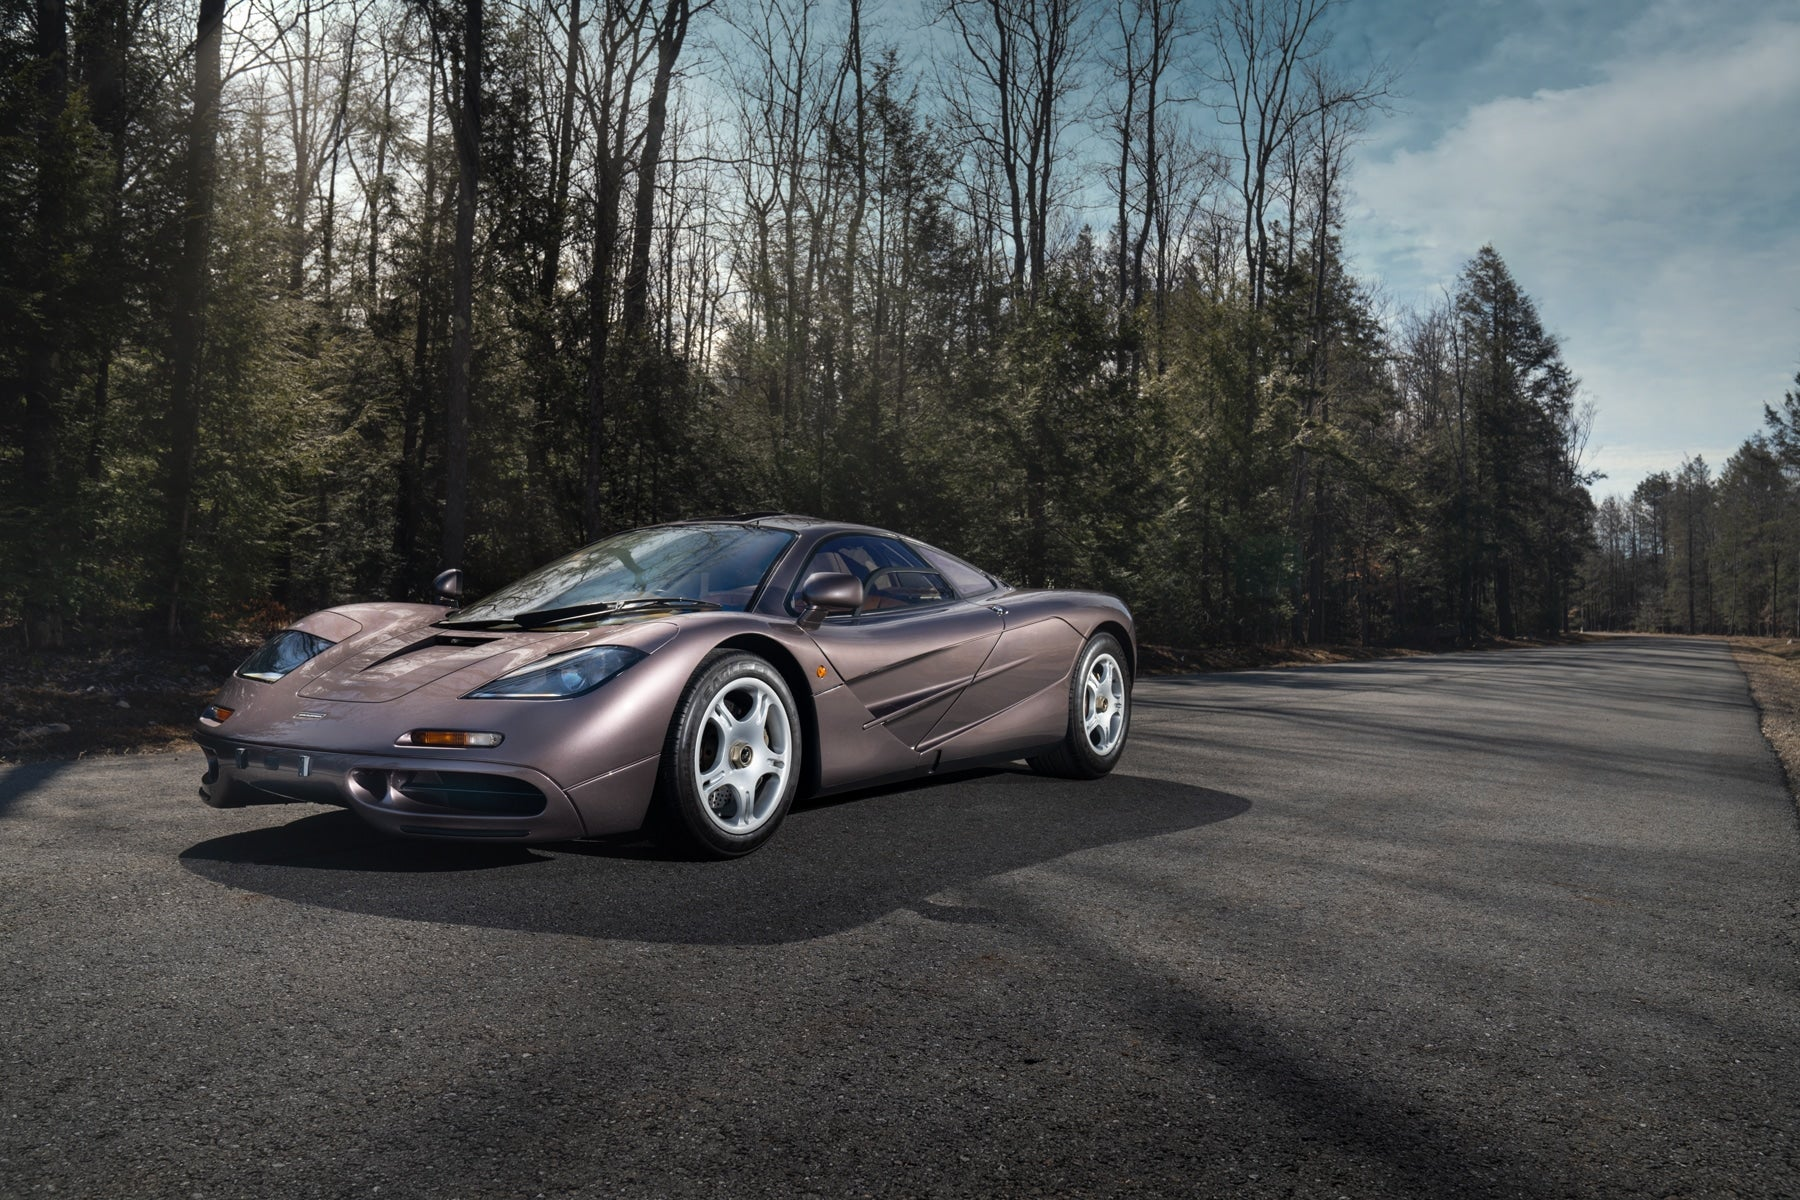 Meet The 1995 McLaren F1 Road Car That Set an Incredible Record Auction Price